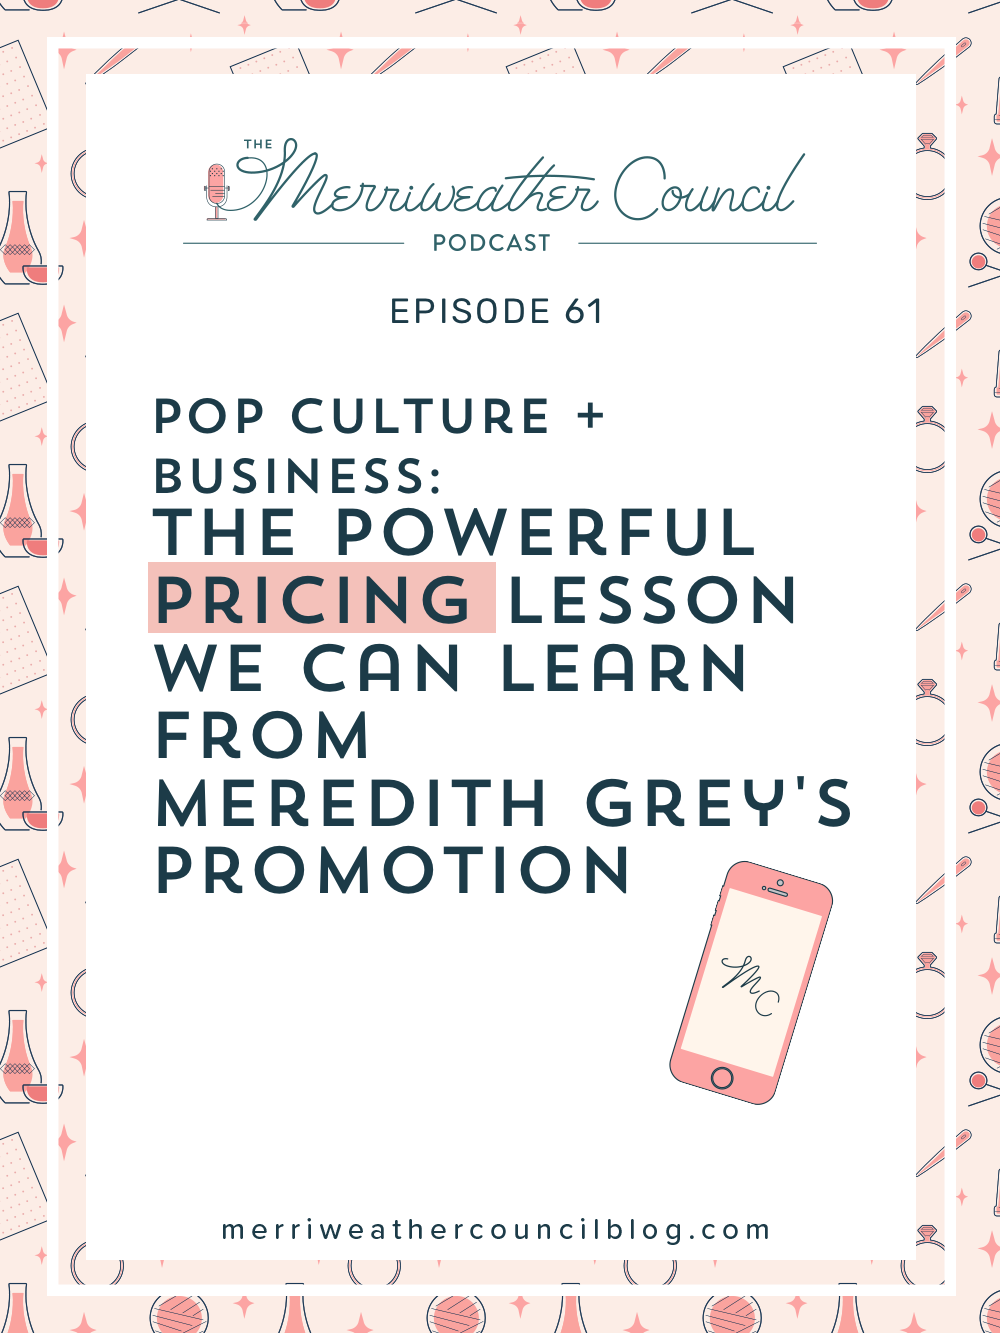 Episode 61 of the Merriweather Council Podcast: Pricing Lessons from Grey's Anatomy